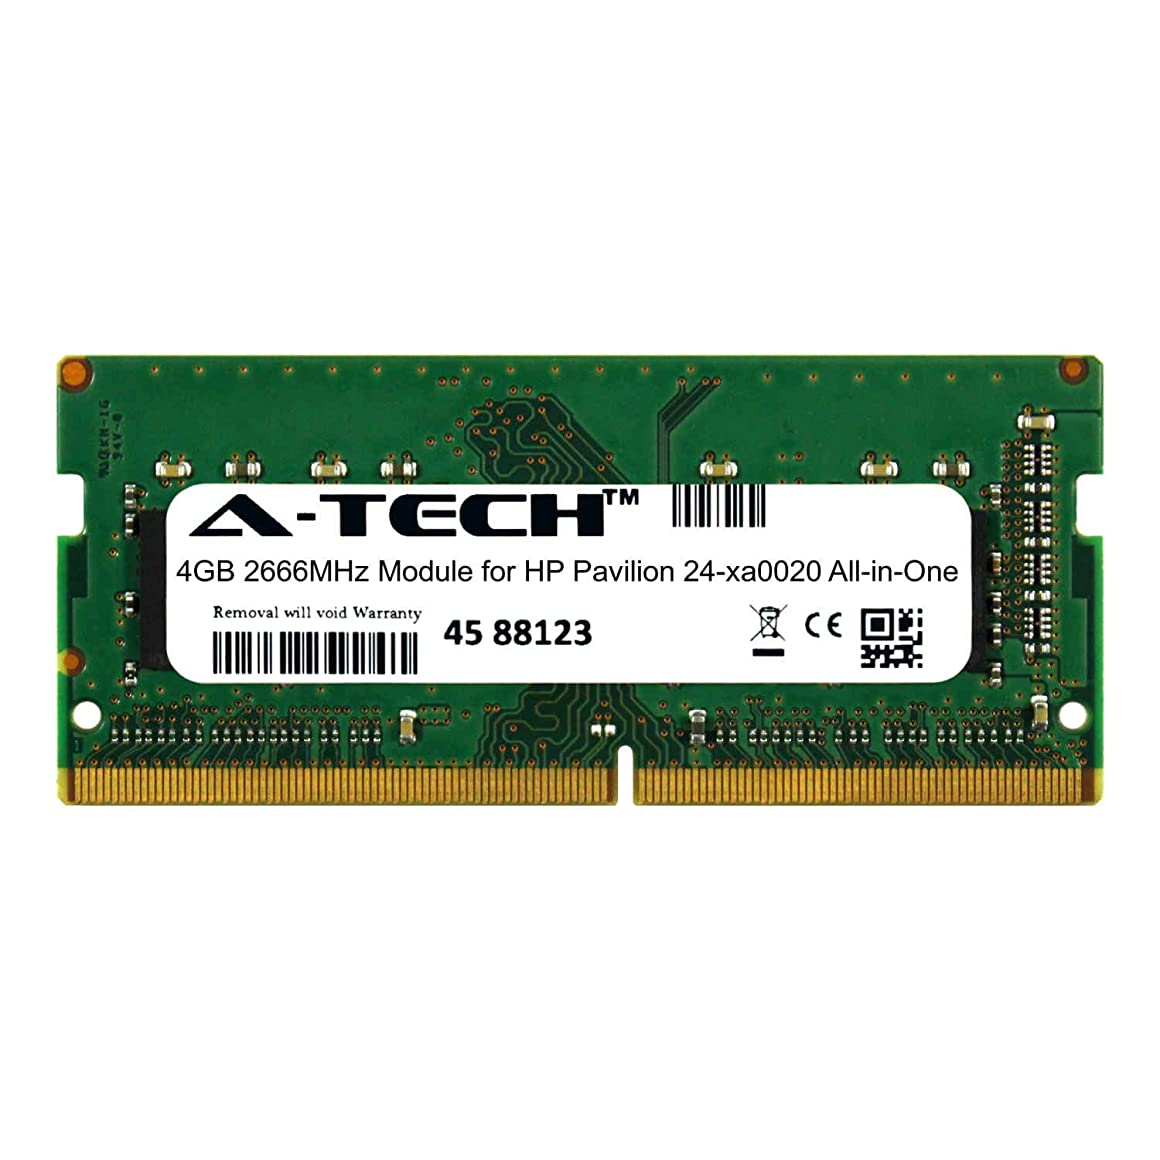 A-Tech 4GB Module for HP Pavilion 24-xa0020 All-in-One (AIO) Compatible DDR4 2666Mhz Memory Ram (ATMS307190A25977X1)